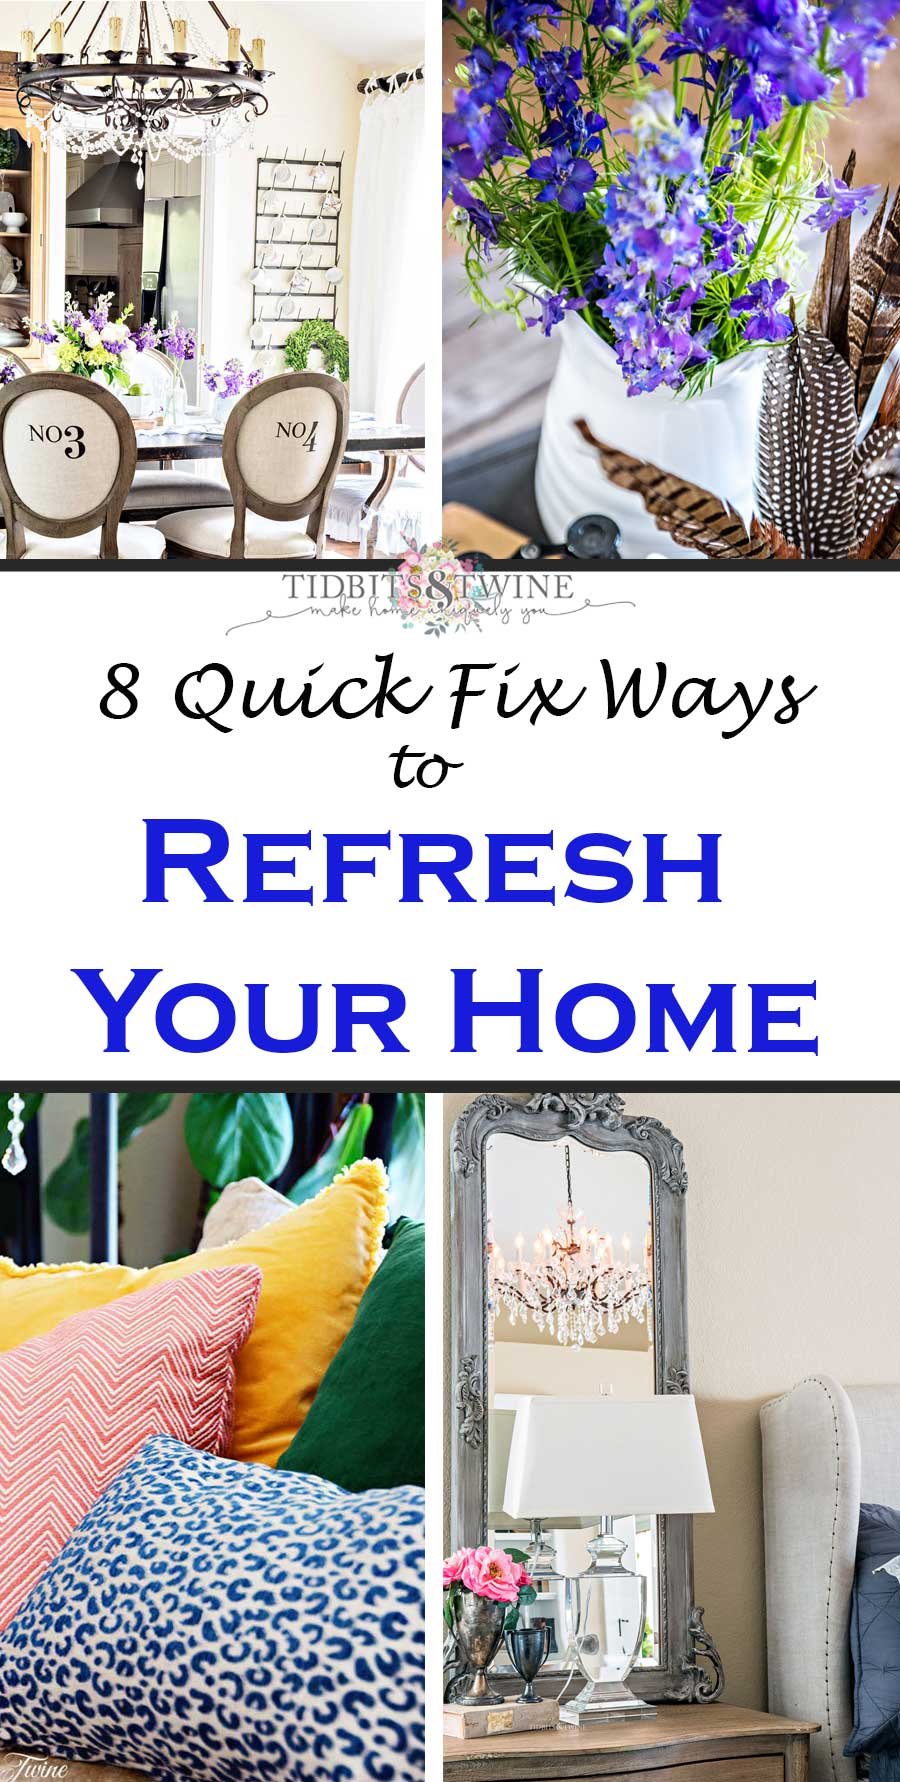 How to Refresh Your Home